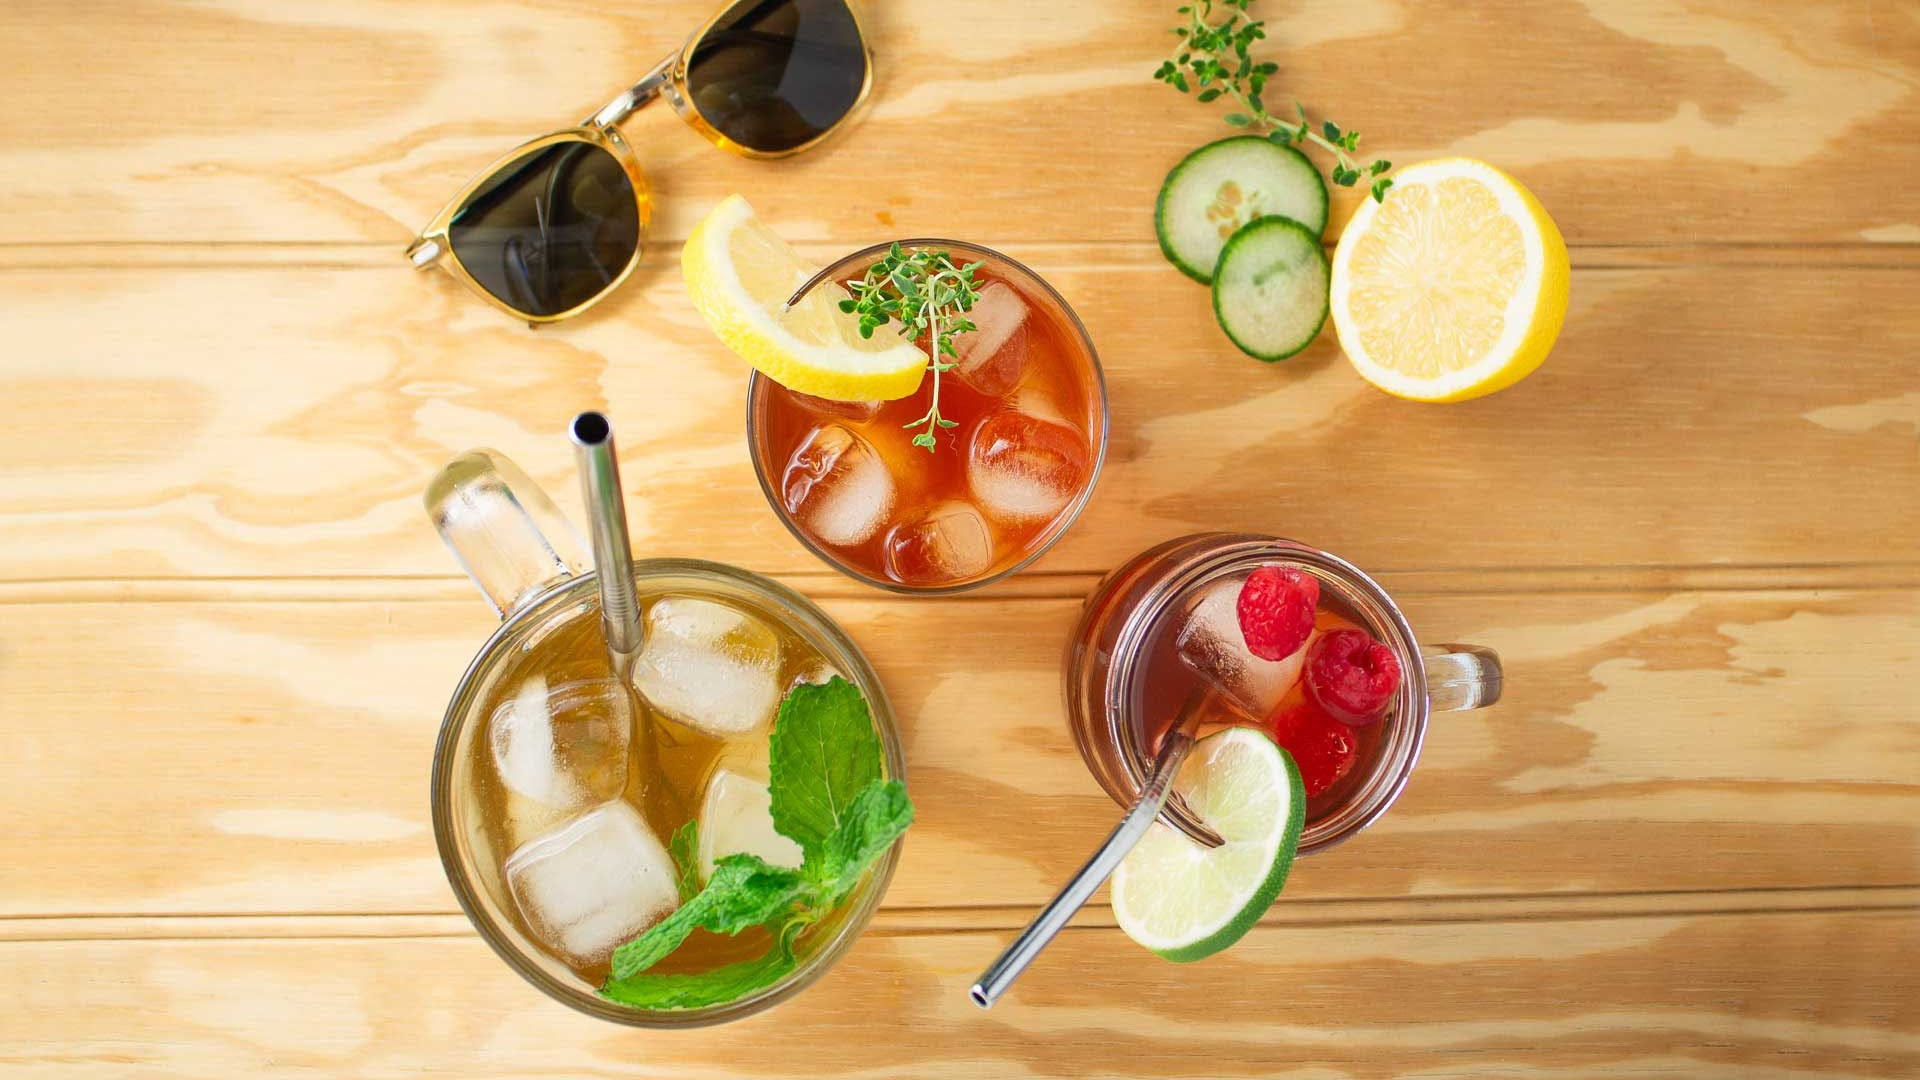 Clover adaptogenic iced tea, 3 different blends with fruit and herb garnishes in glasses on a wood background.